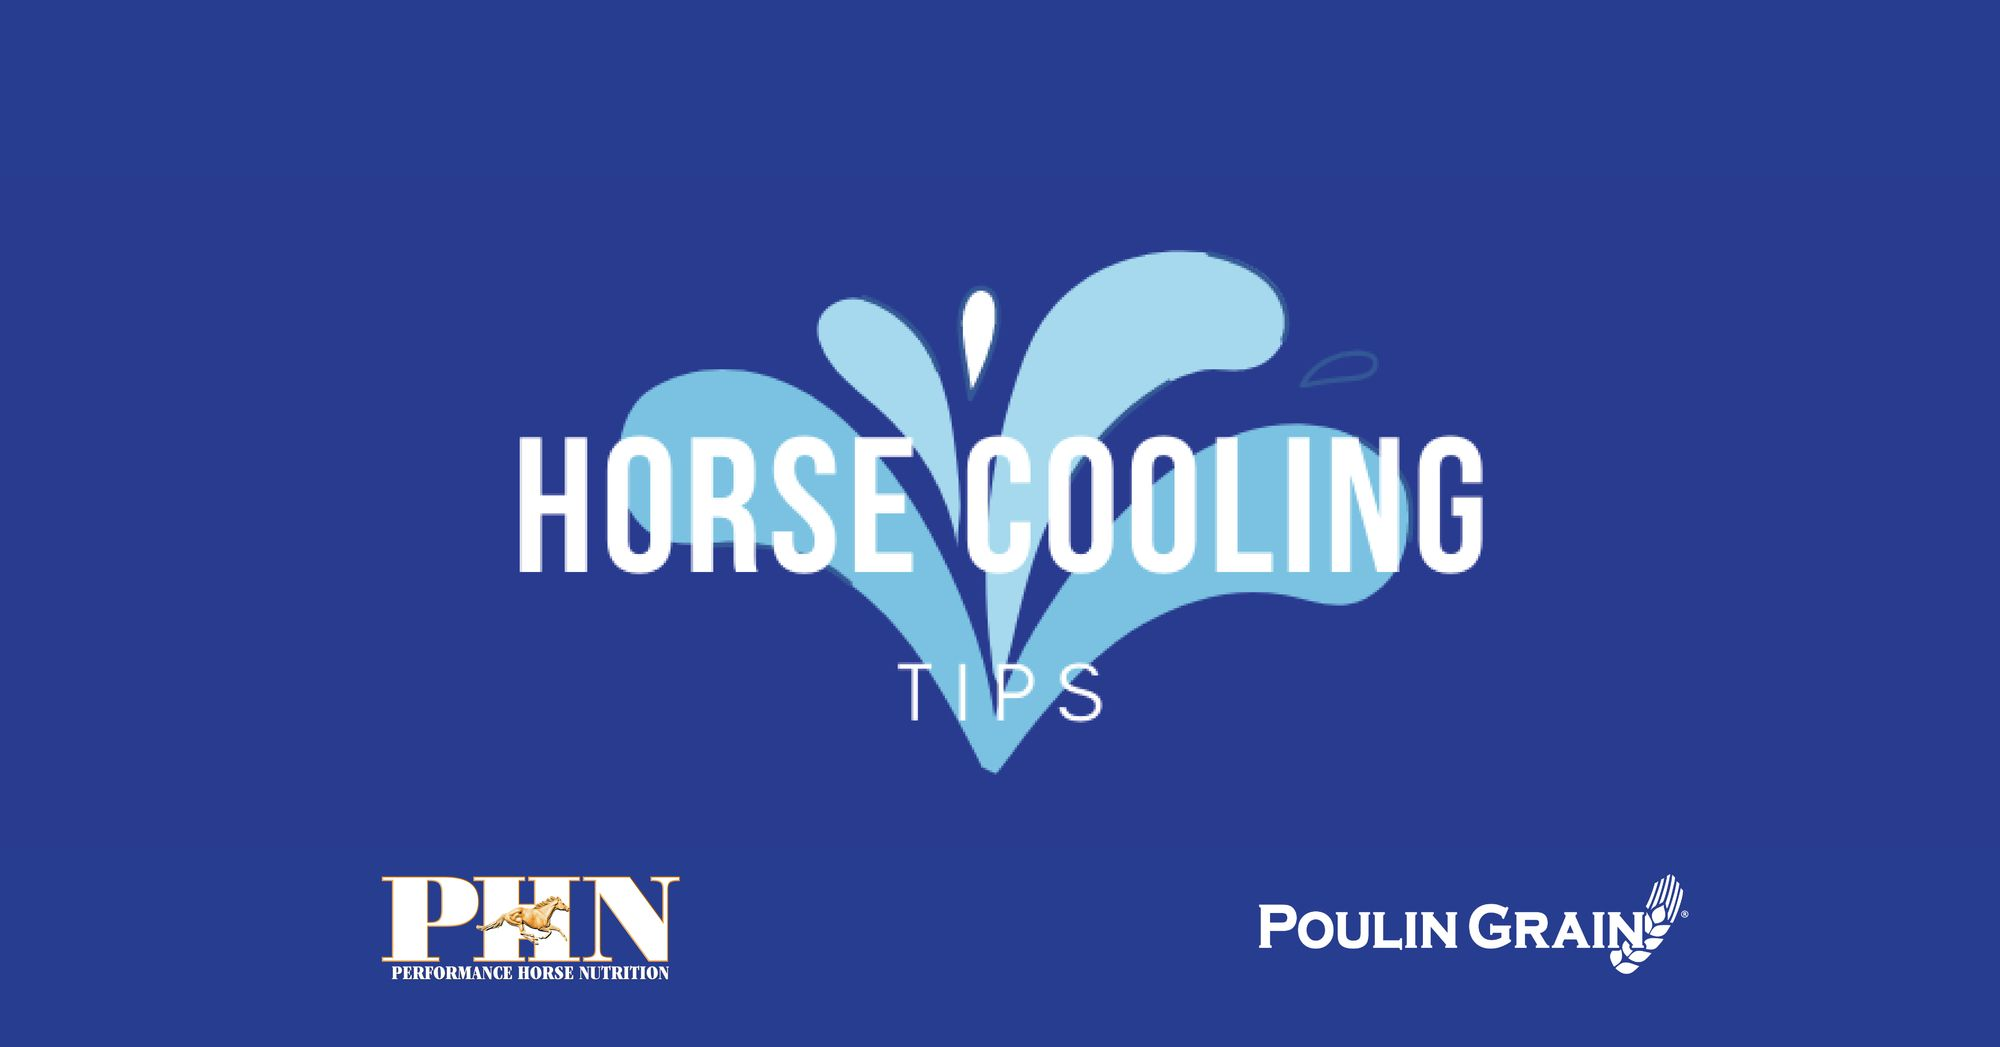 Horse Cooling Tips